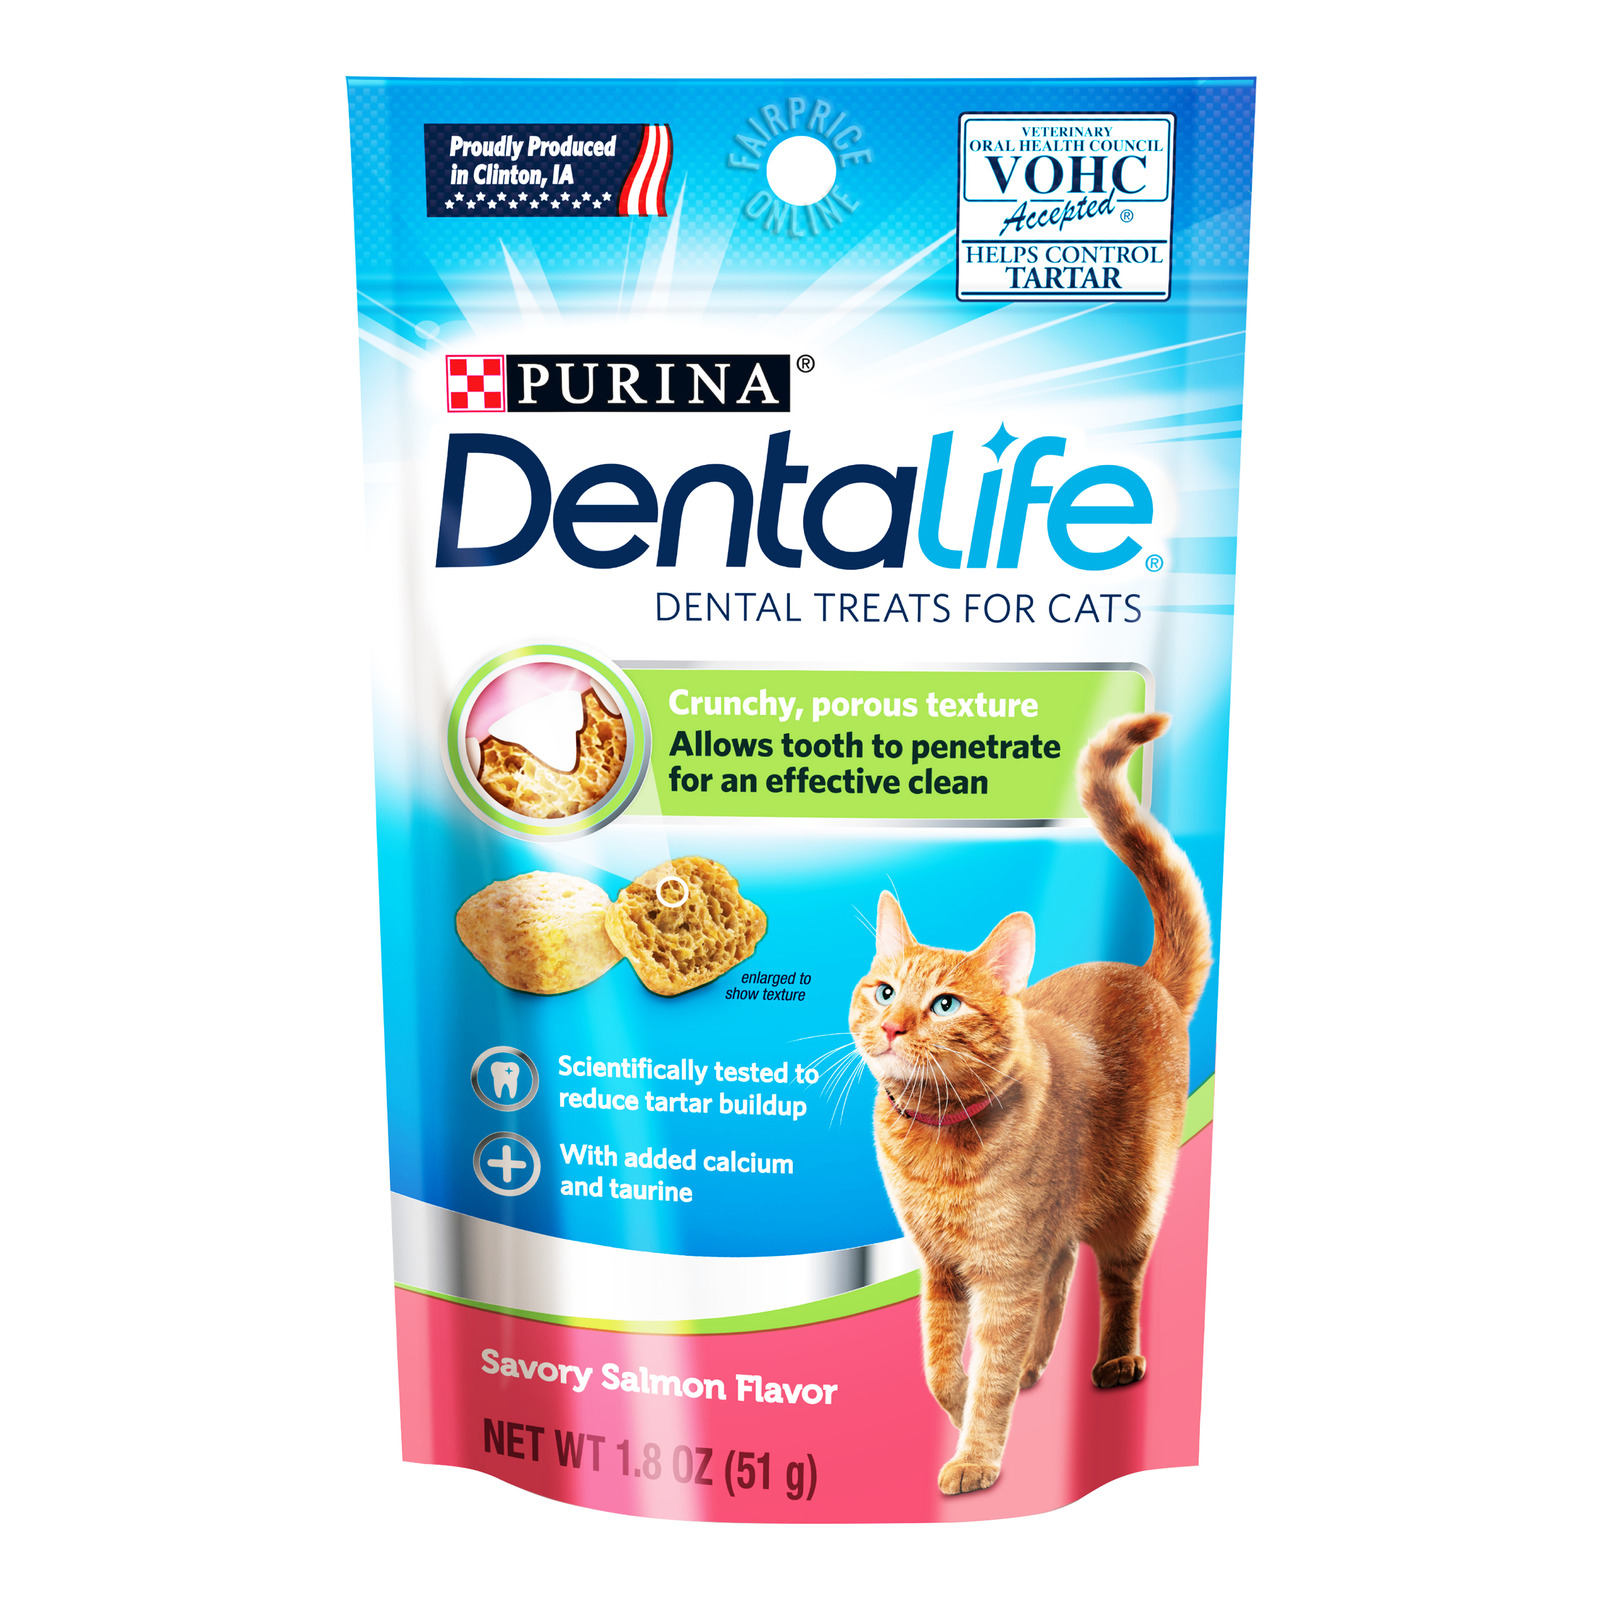 Purina Dentalife Dental Cat Treats - Savory Salmon